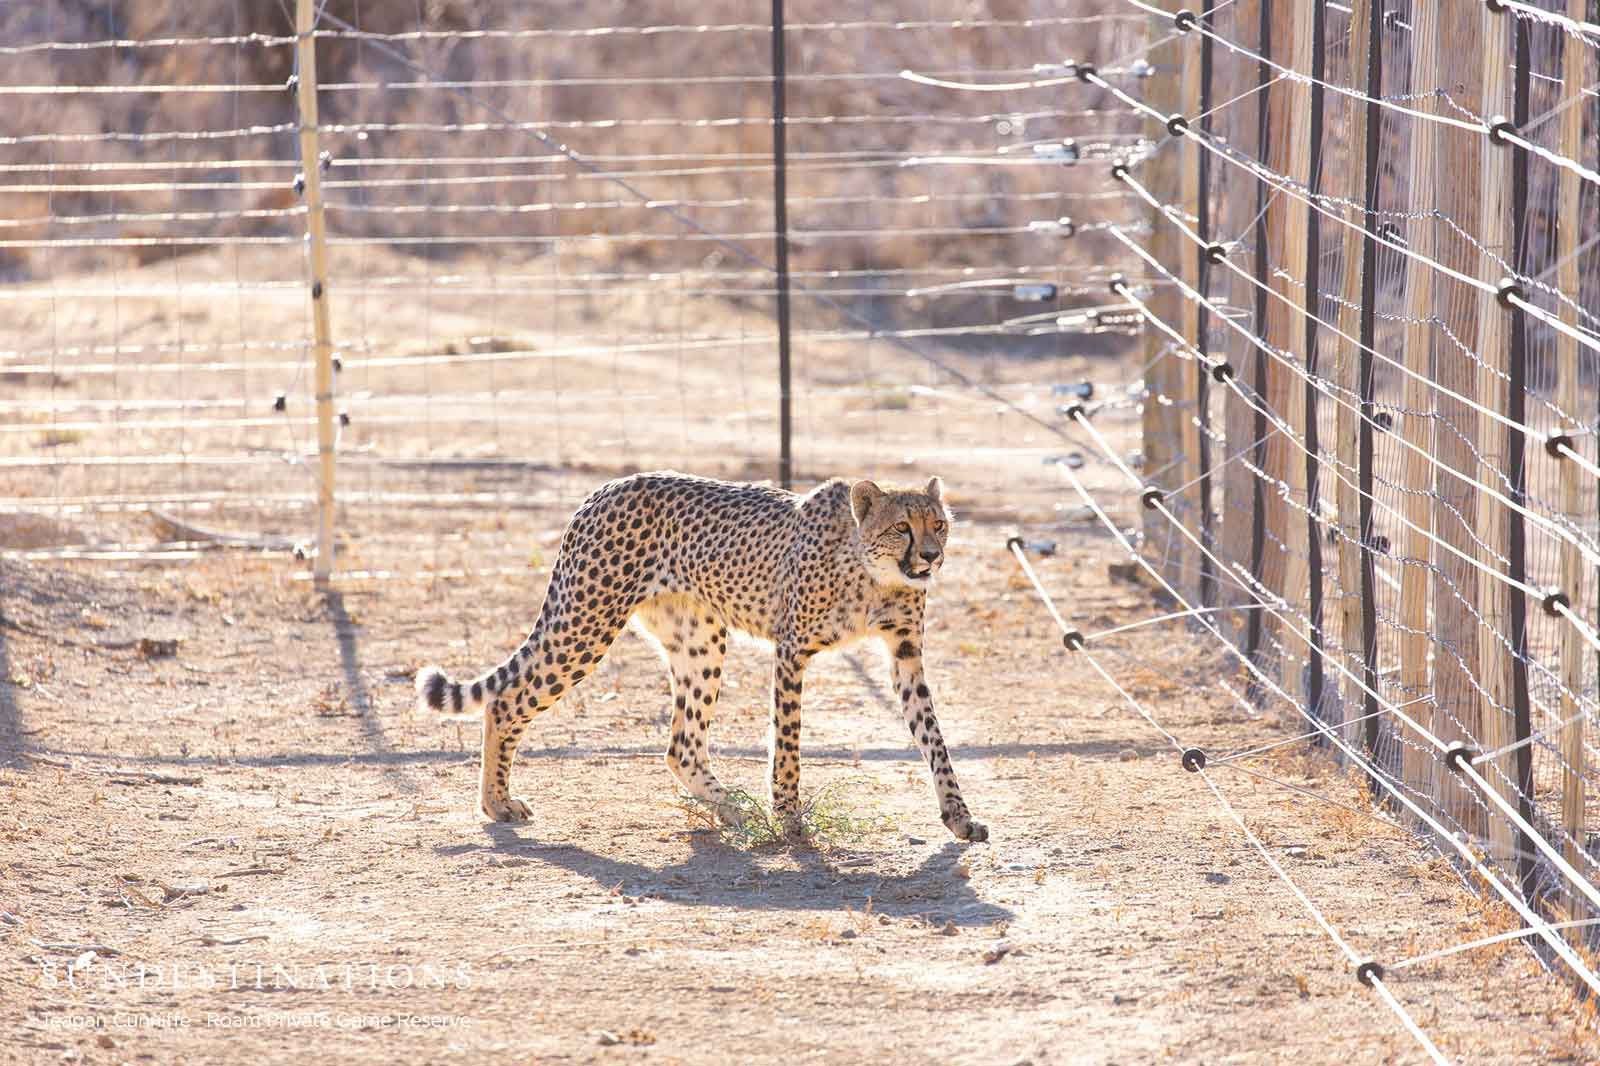 Roam Cheetah in Boma